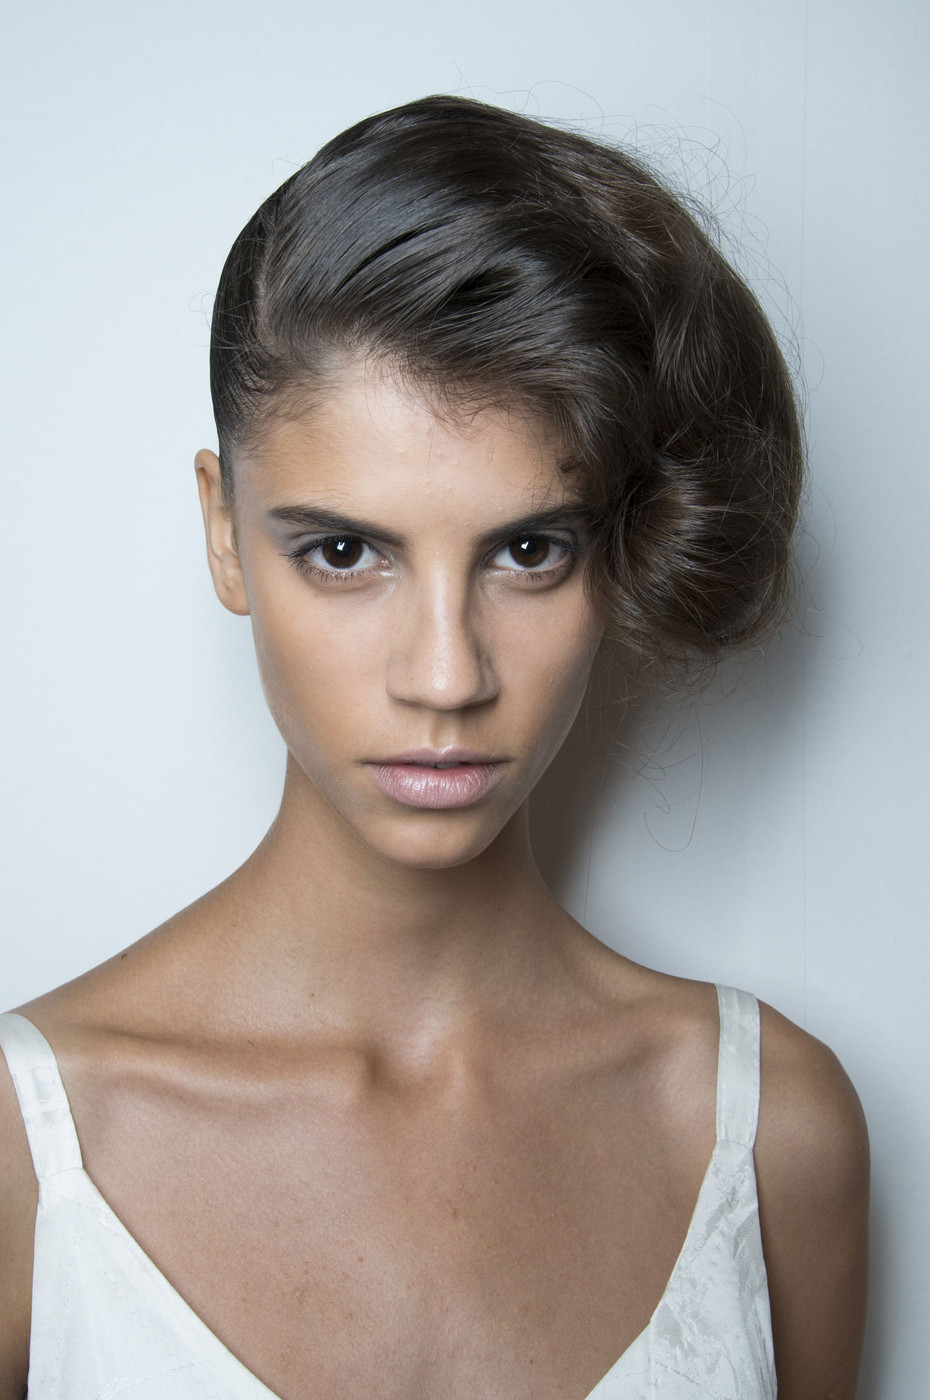 7 Best Hairstyles For Spring : Herchcovitch best spring runway hairstyles stylebistro